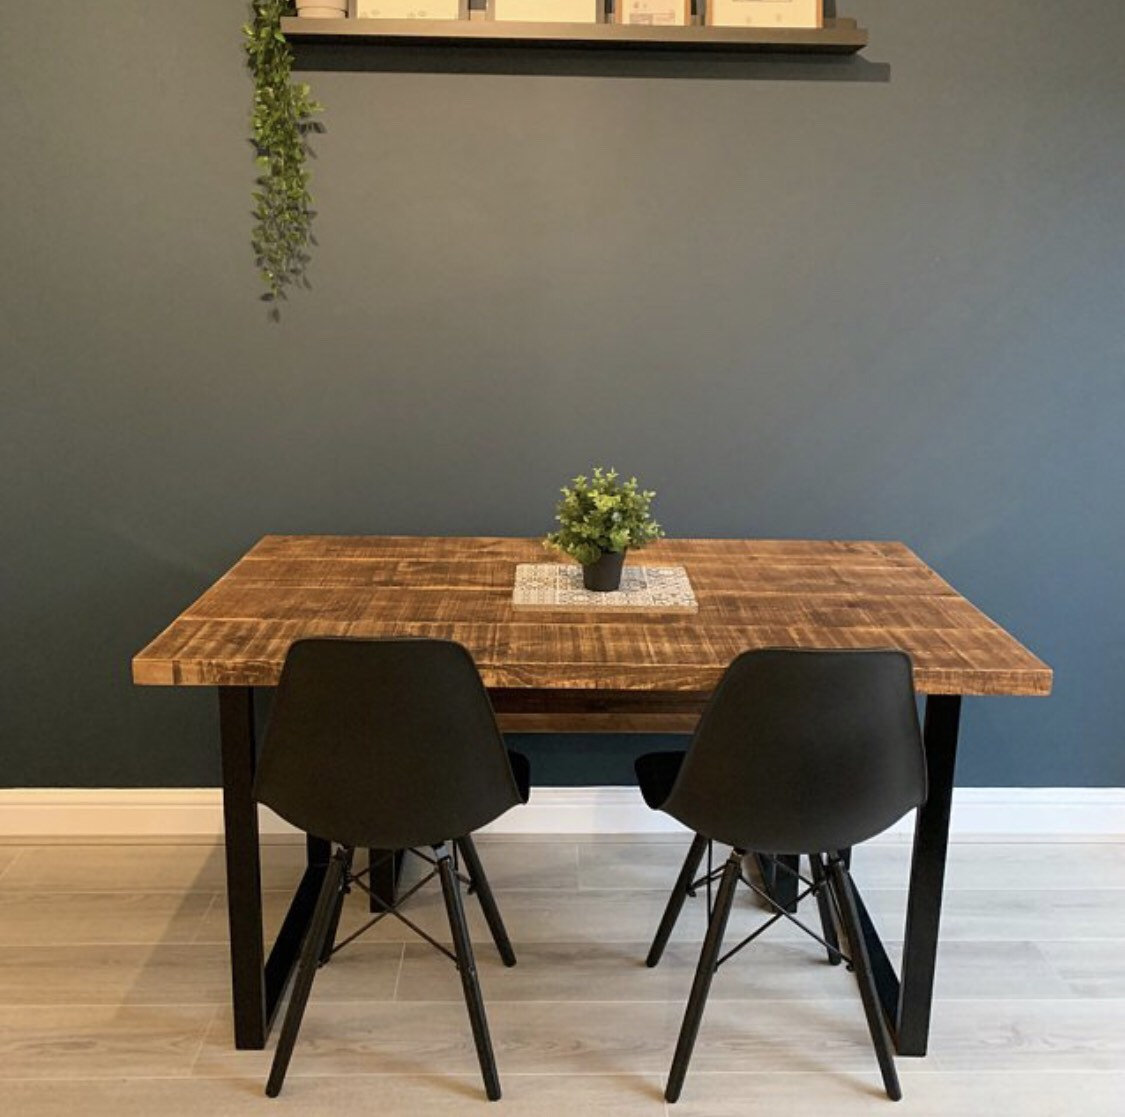 Admirable Table And Bench Package With Square Loop Legs Rustic Reclaimed Industrial Style Dining Table Home Interior And Landscaping Eliaenasavecom